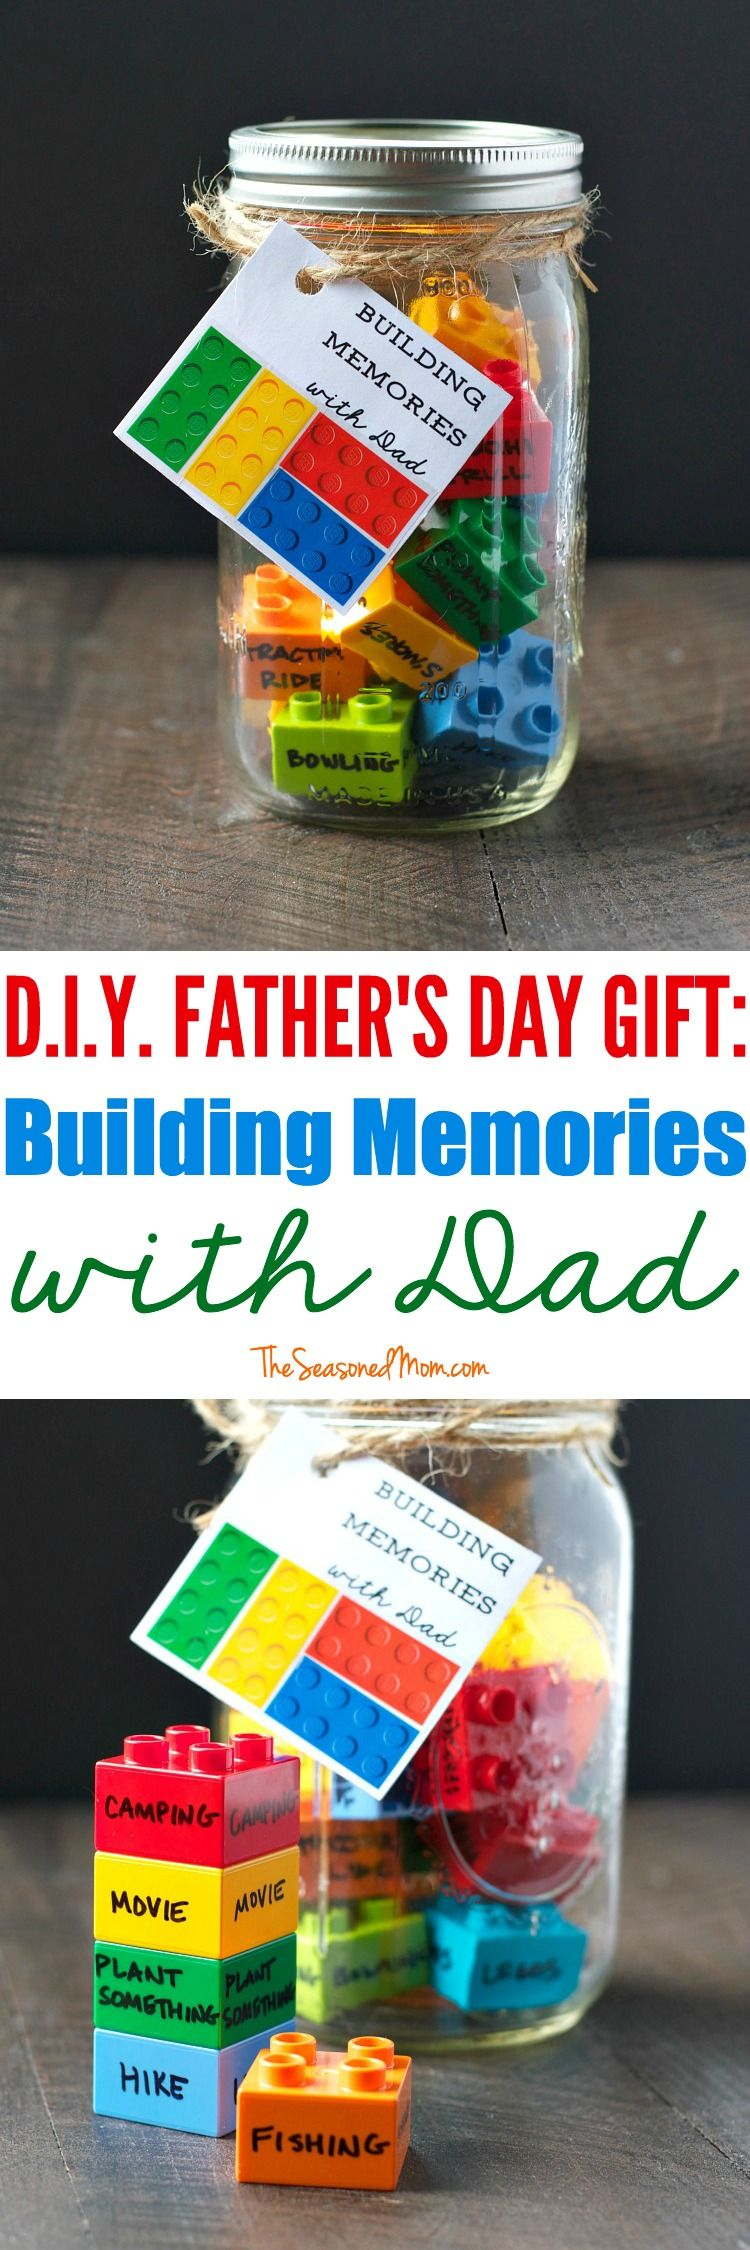 DIY Father's Day Gift Building Memories with Dad Father